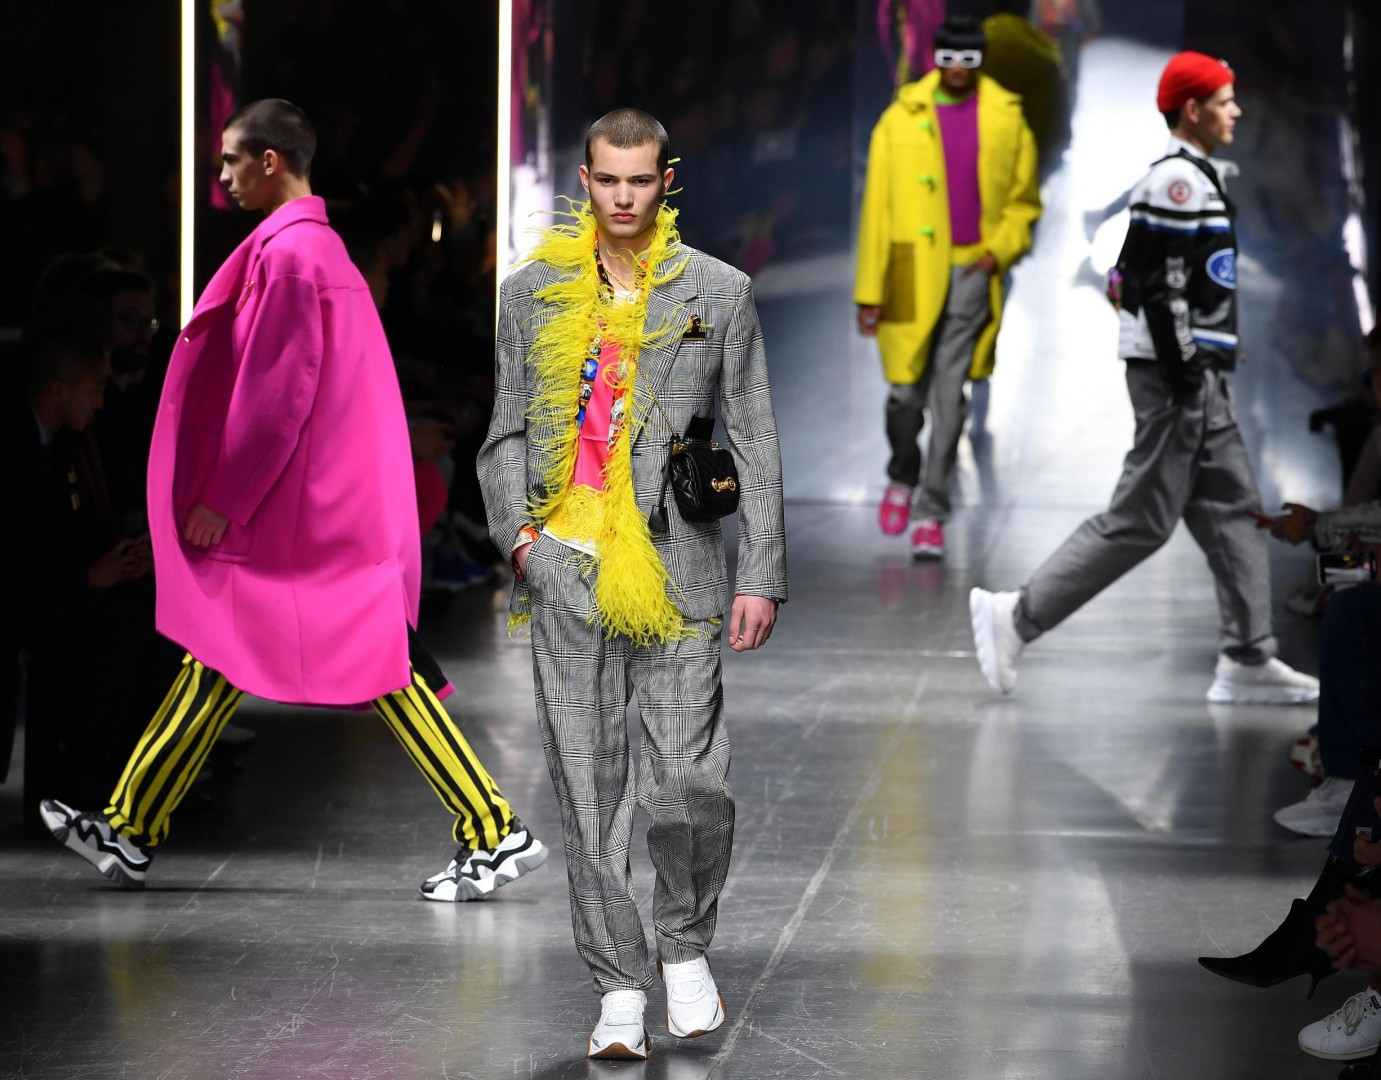 a7a74a65 Versace sets men free in first show since Michael Kors buyout | South China  Morning Post